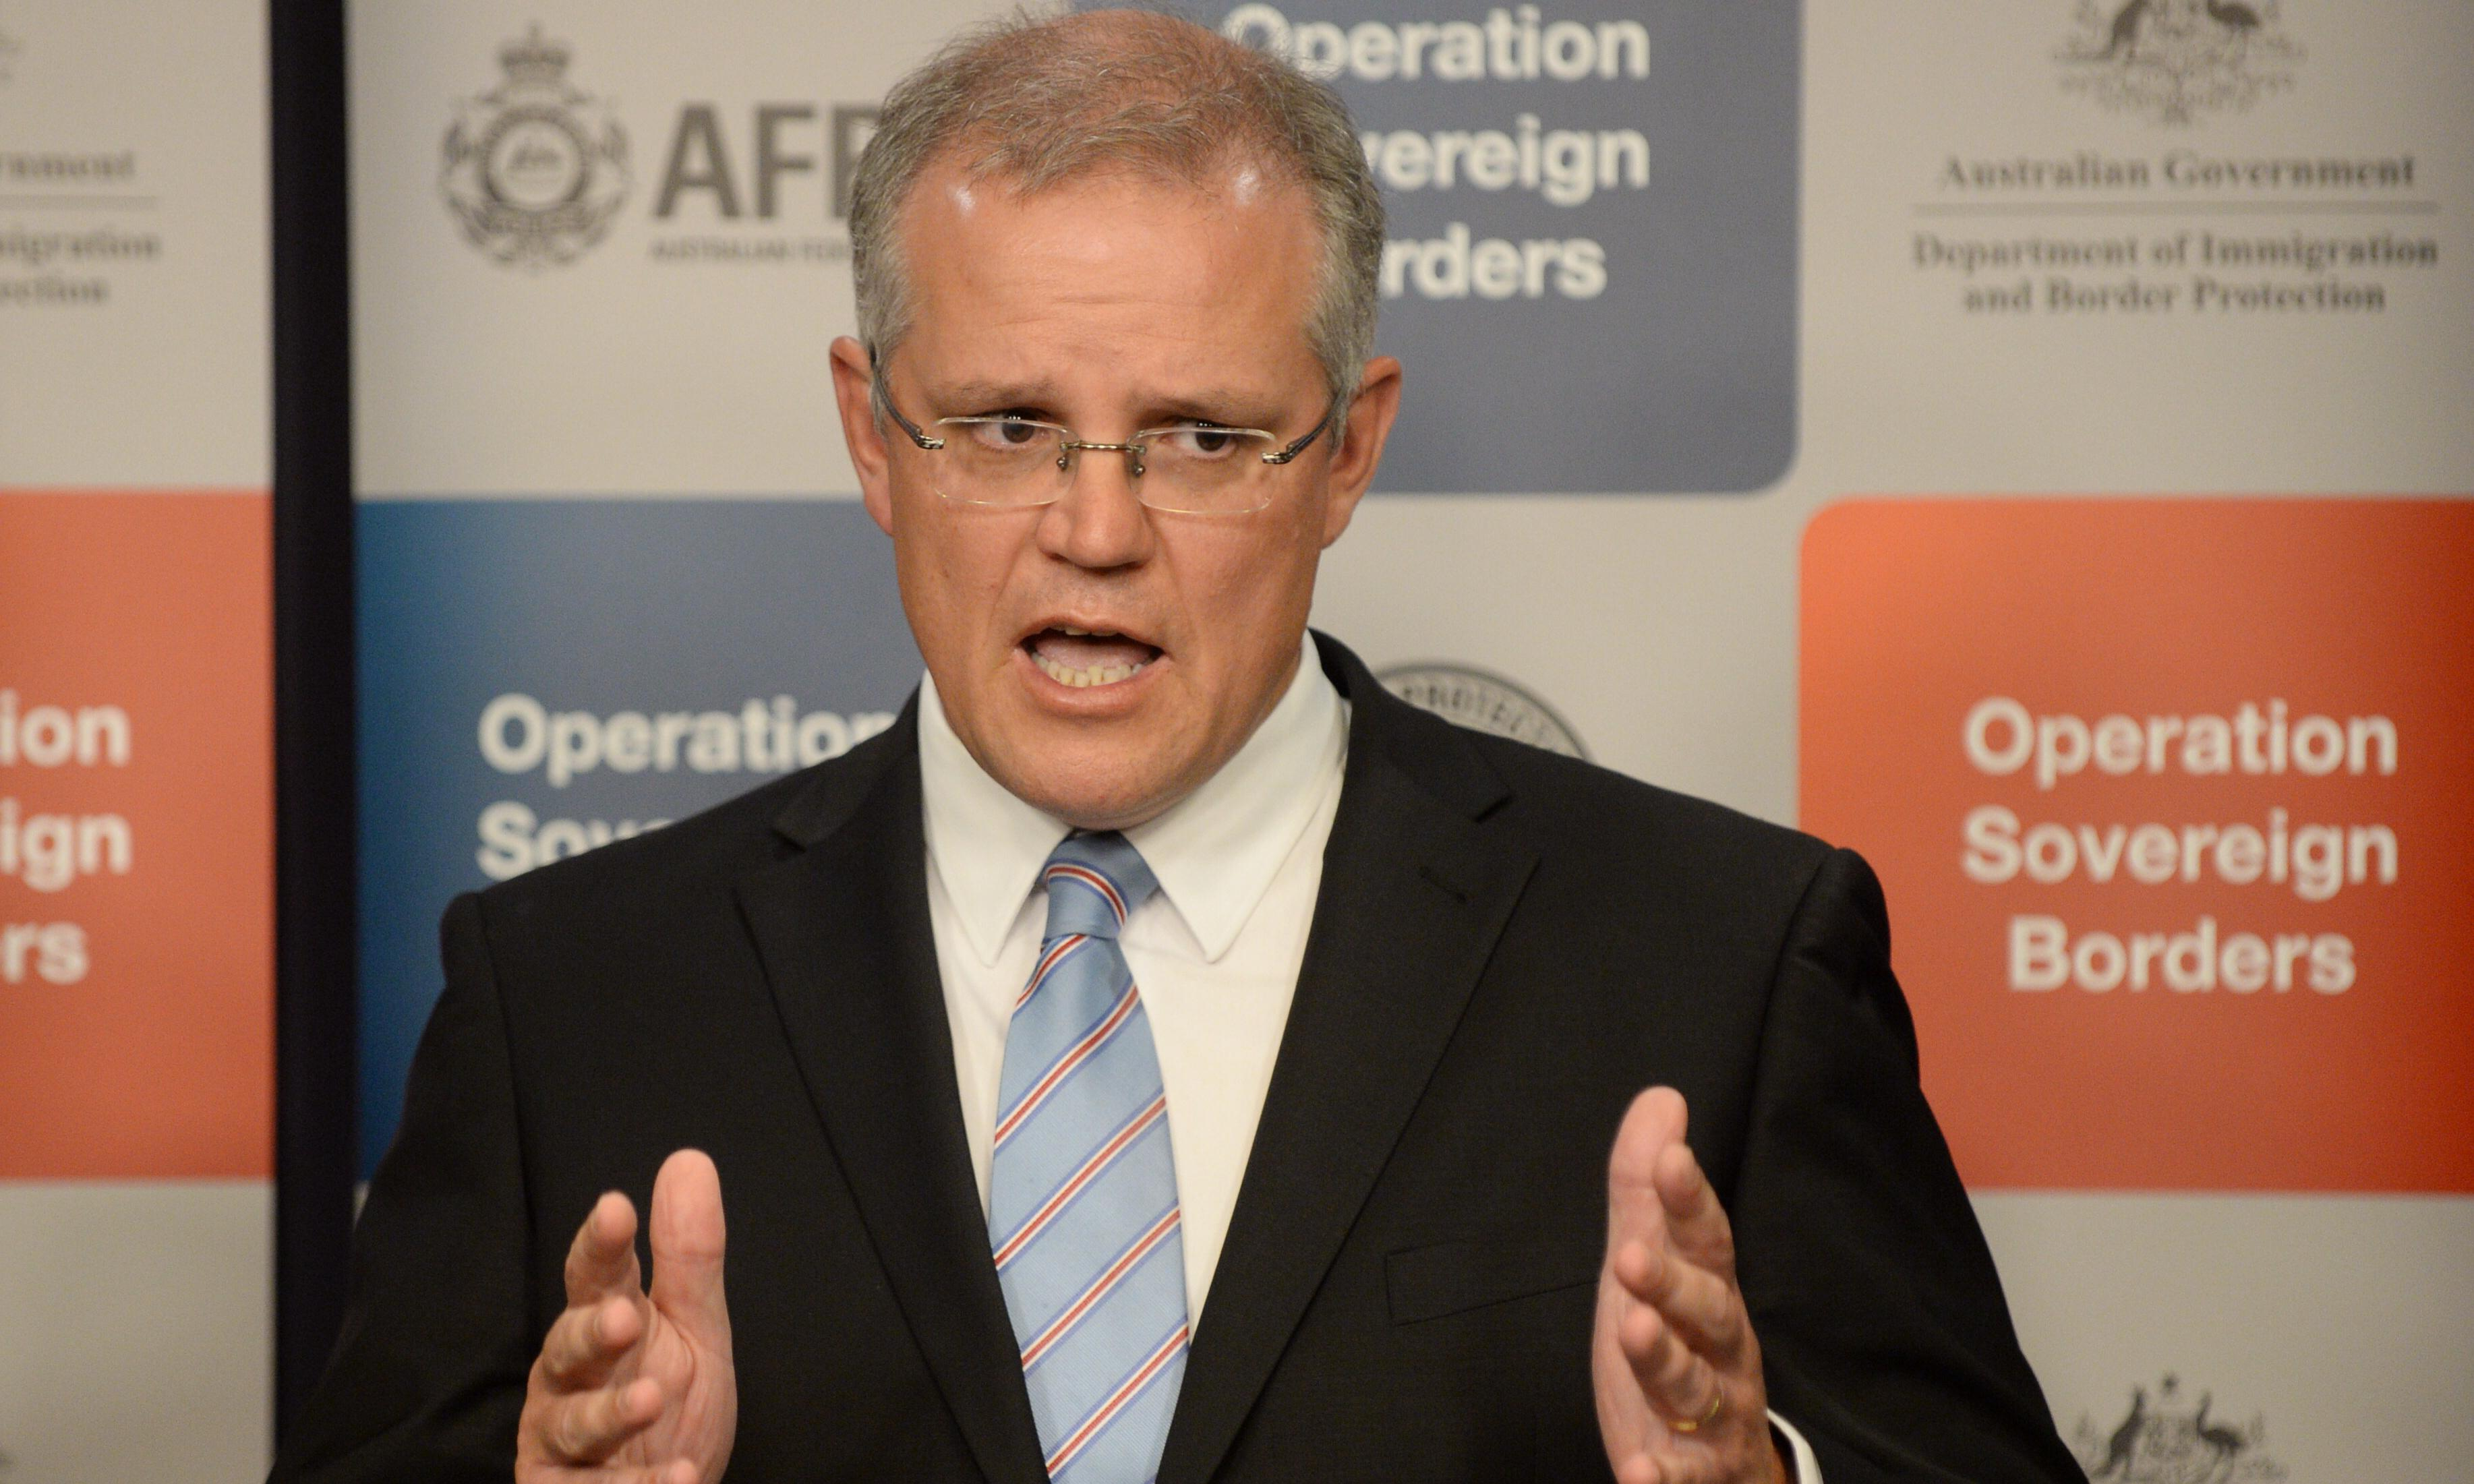 Scott Morrison's single-mindedness when immigration minister is a frightening trait